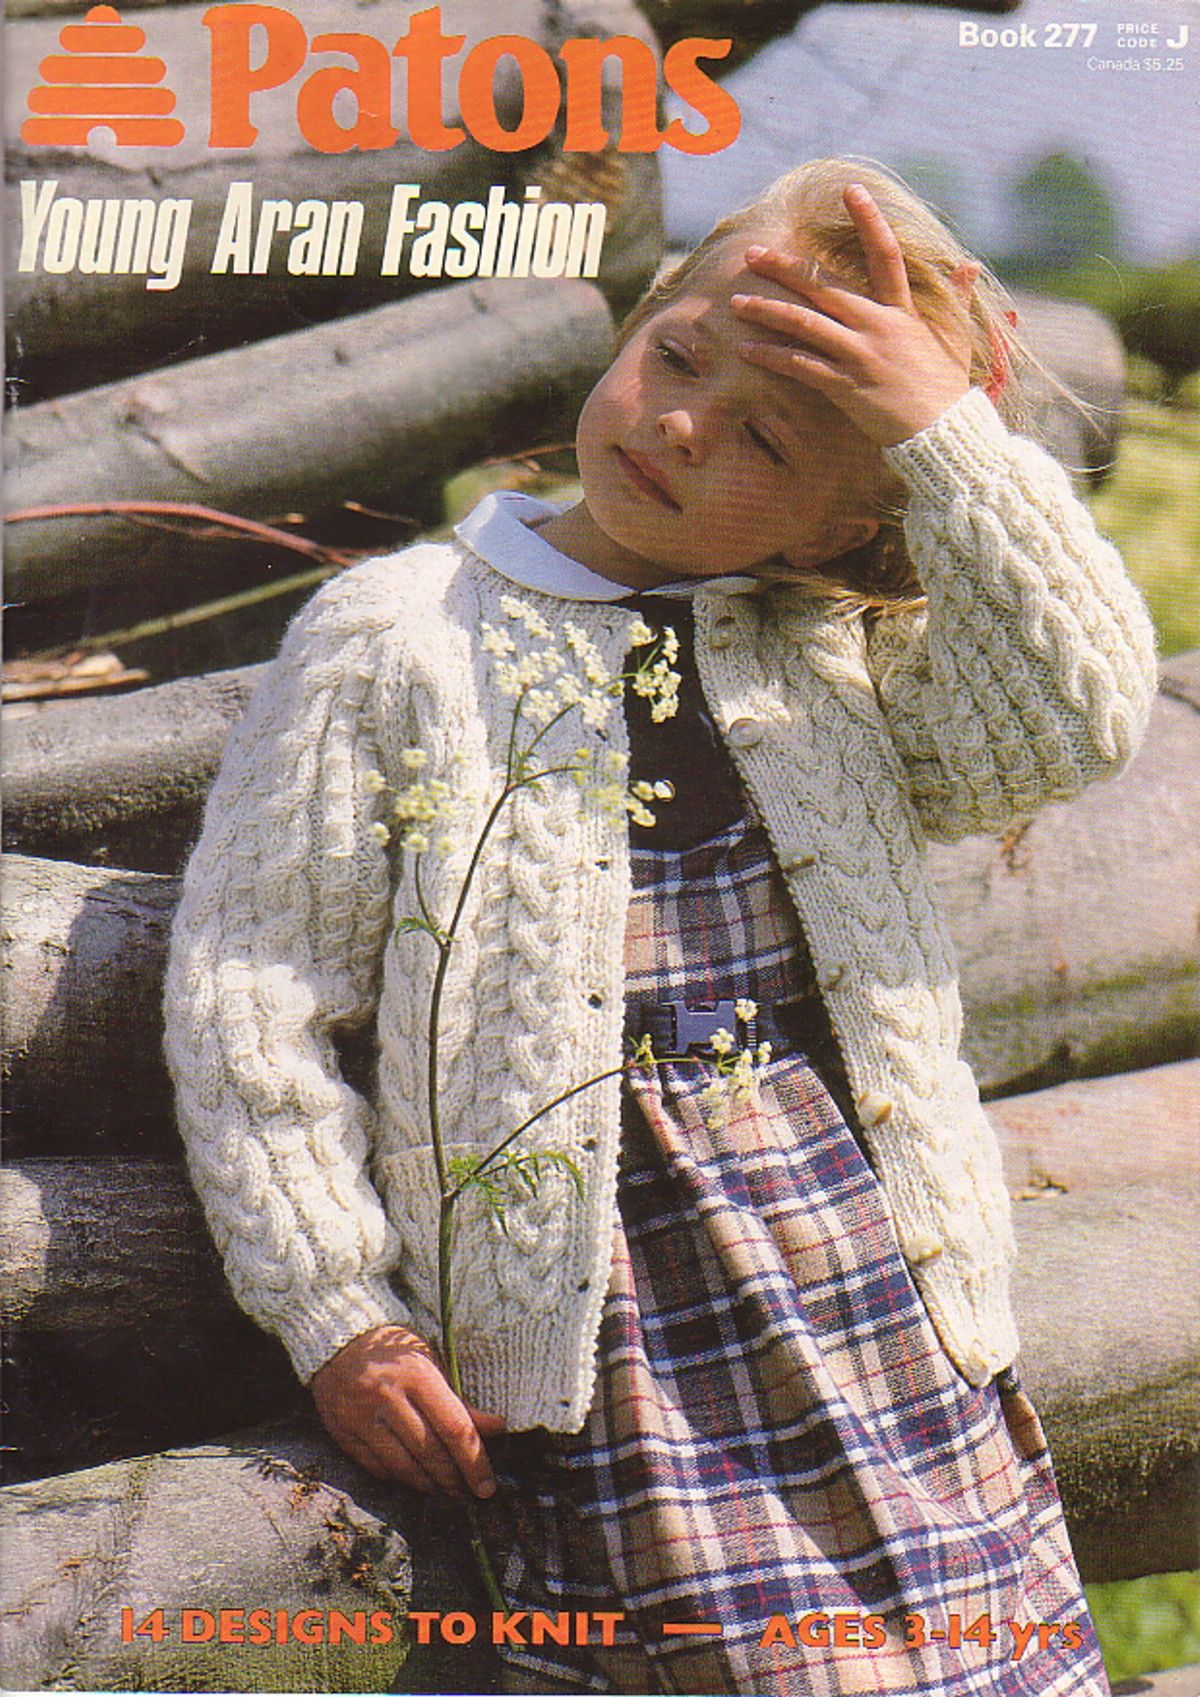 Patons Young Aran Fashion, Book 277 | Knitting Sewing Crochet for ...